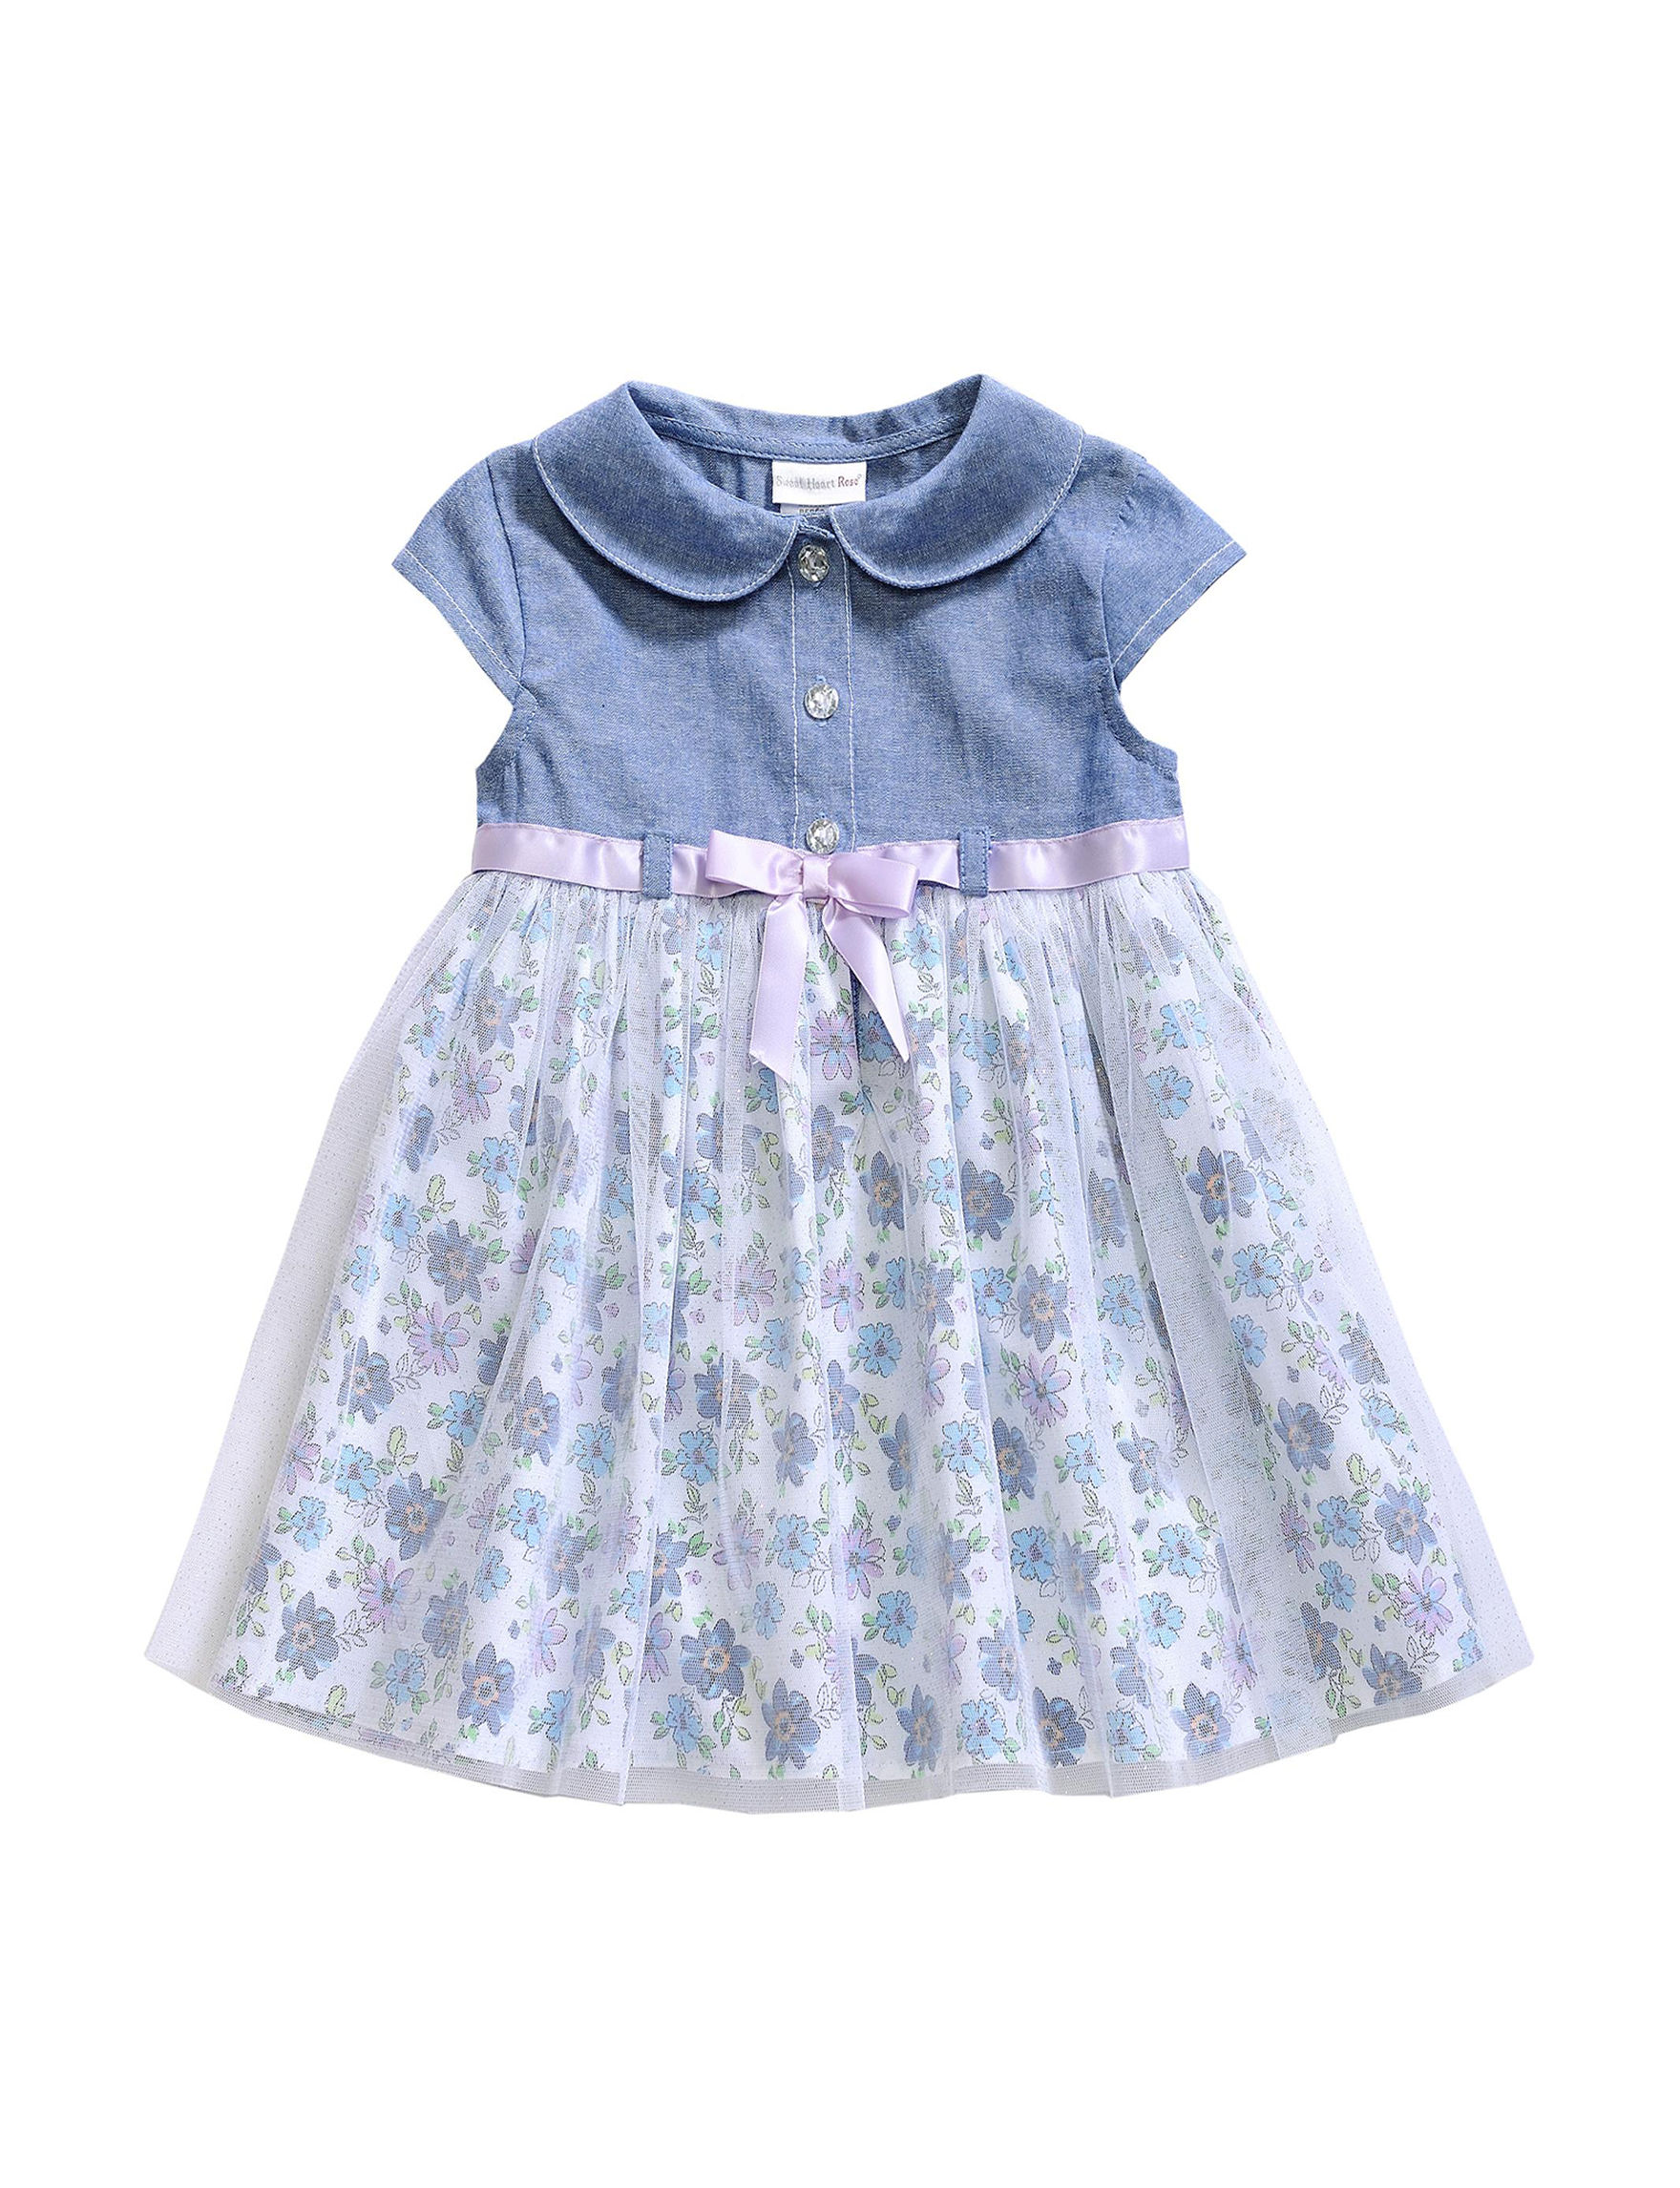 Youngland Blue Floral